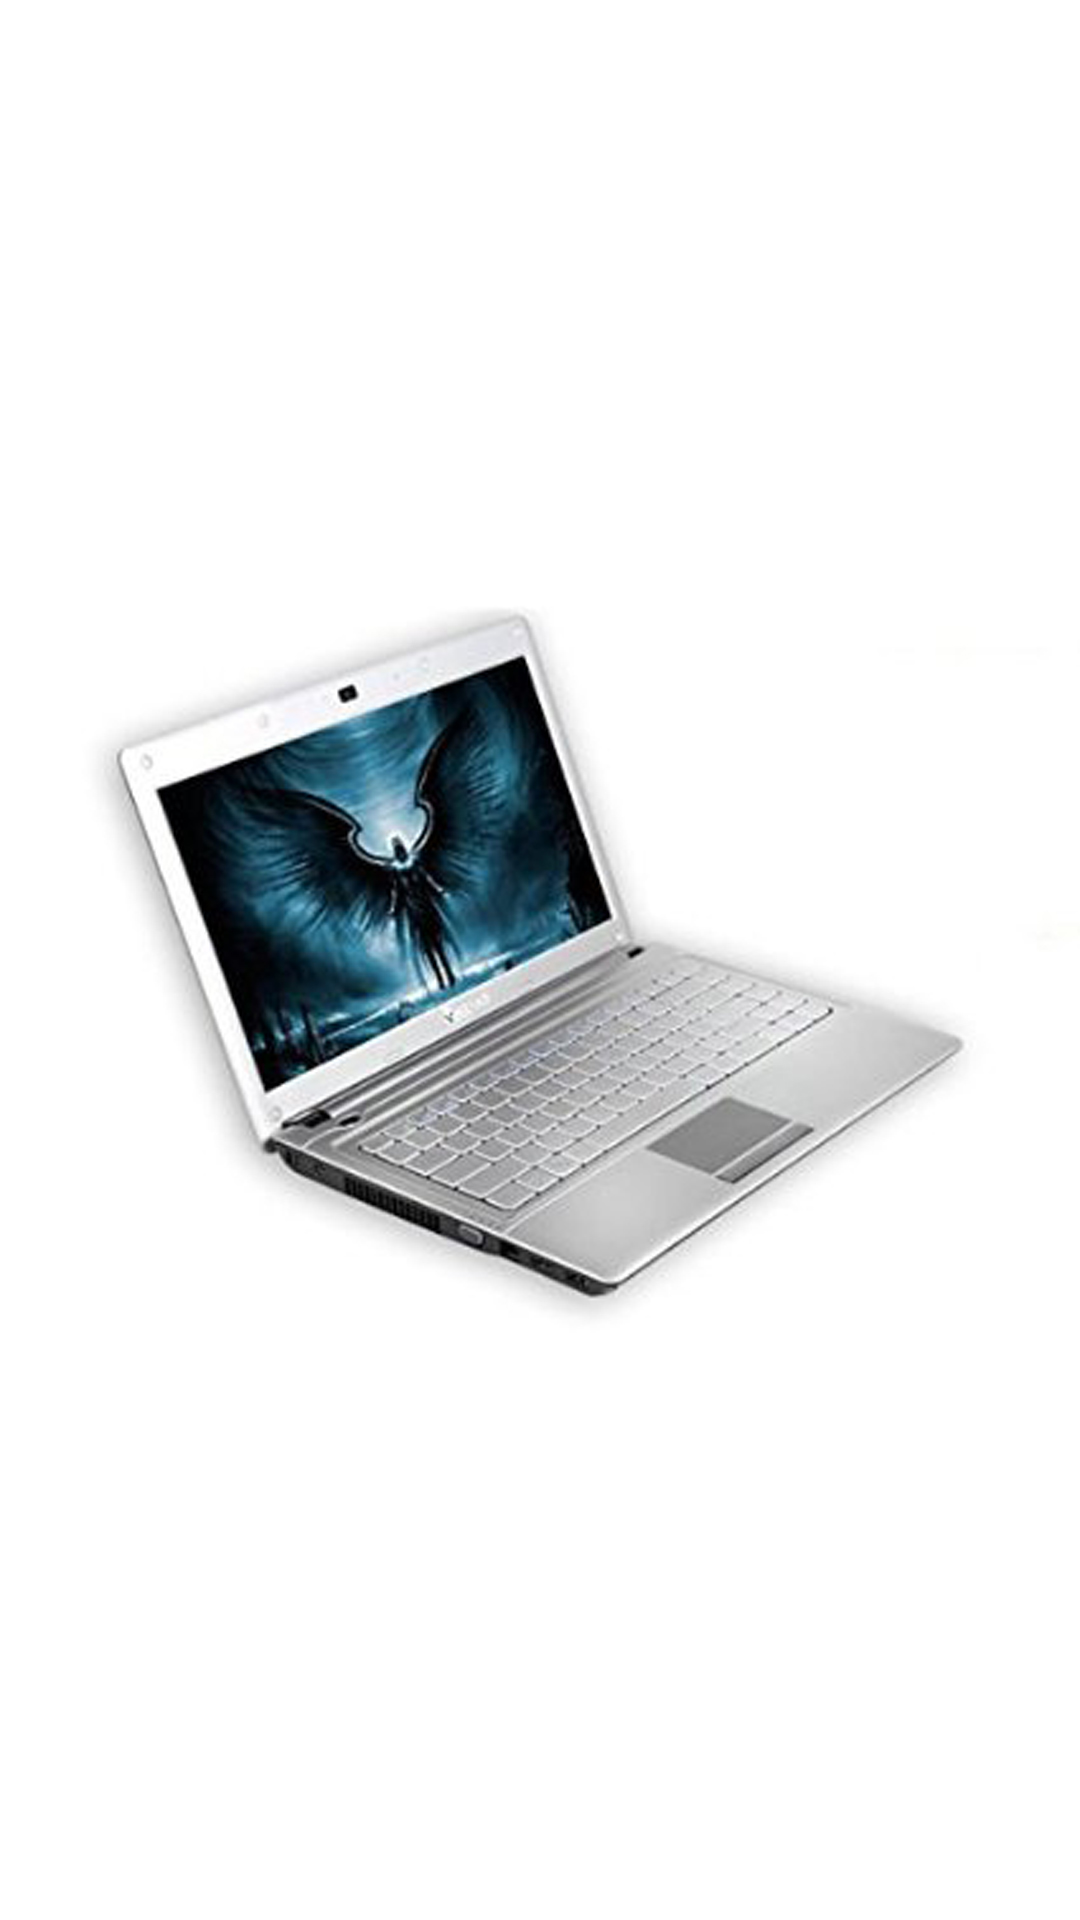 "VEDAS WAVE II (VW471010154) (Core i7 (4th Gen)/16 GB/1 TB/39.62 cm (15.6"")/Windows 8) (Silver)"